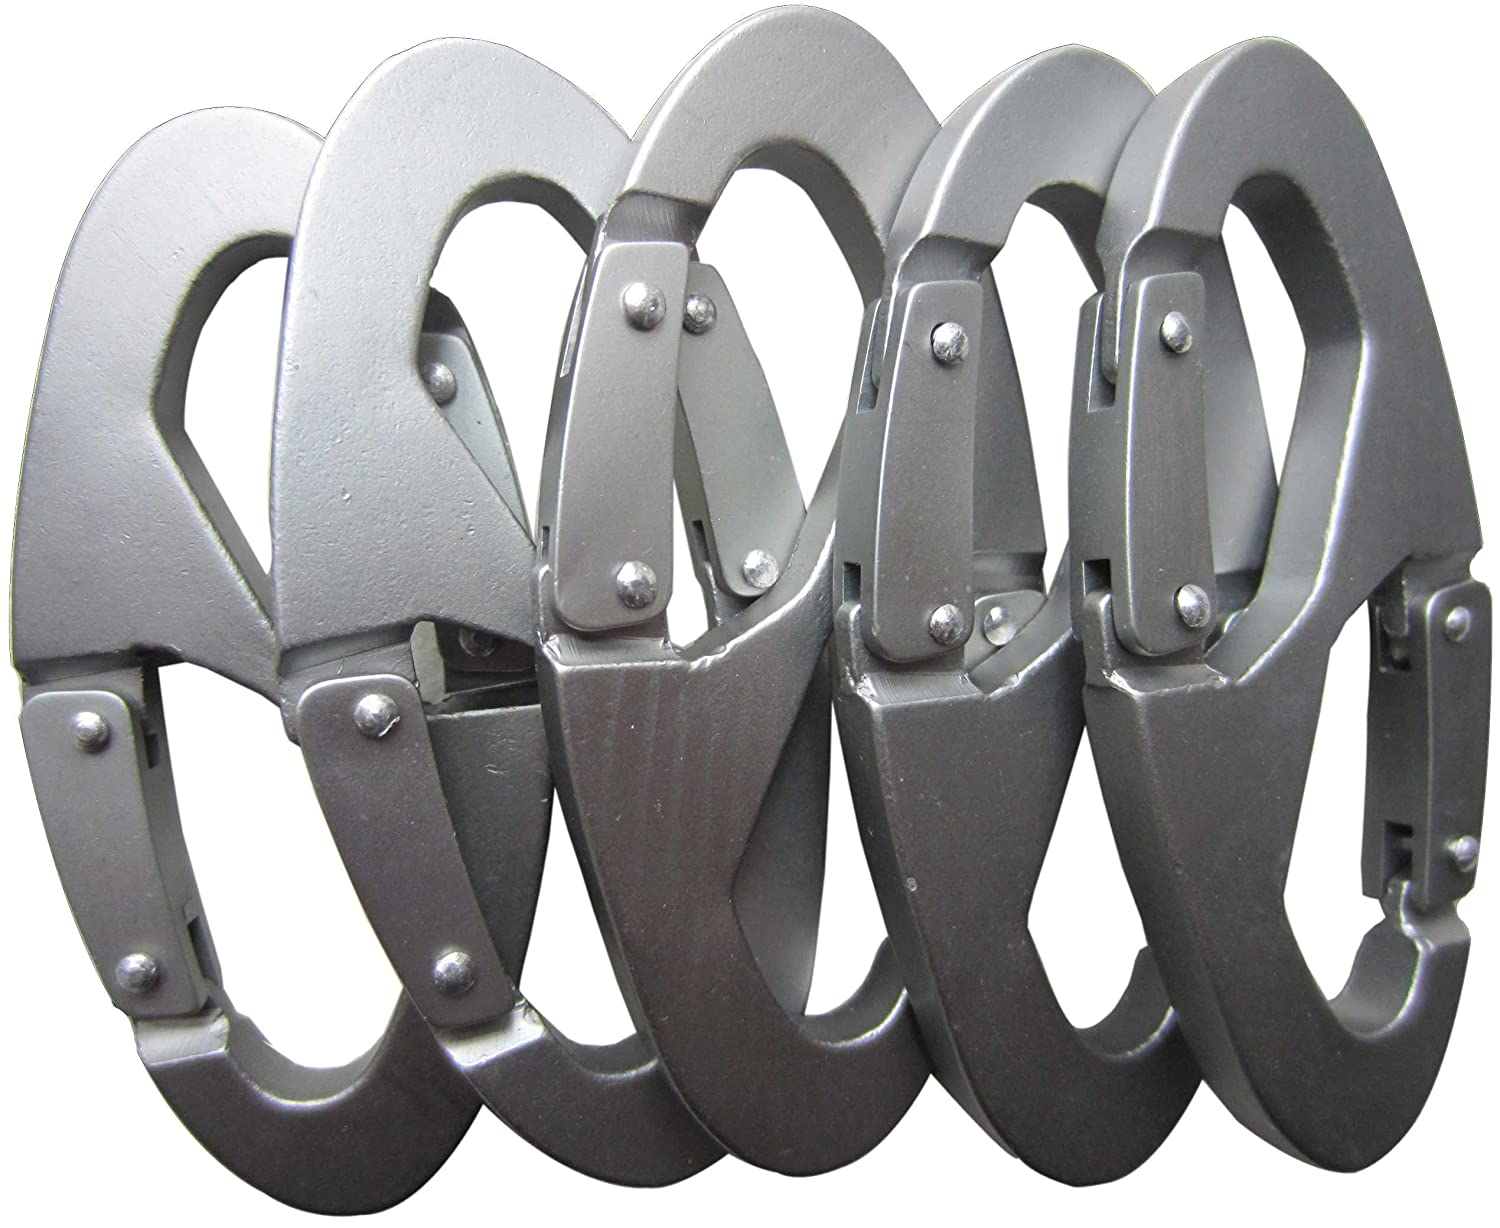 LeBeila 8 Shape Carabiner Aluminum Alloy Rope Buckle S Style Snap Clip Hook Keychain for Climbing, Hiking, Camping and Outdoor Livings (5 PCS) LBL-B7WG2-3561